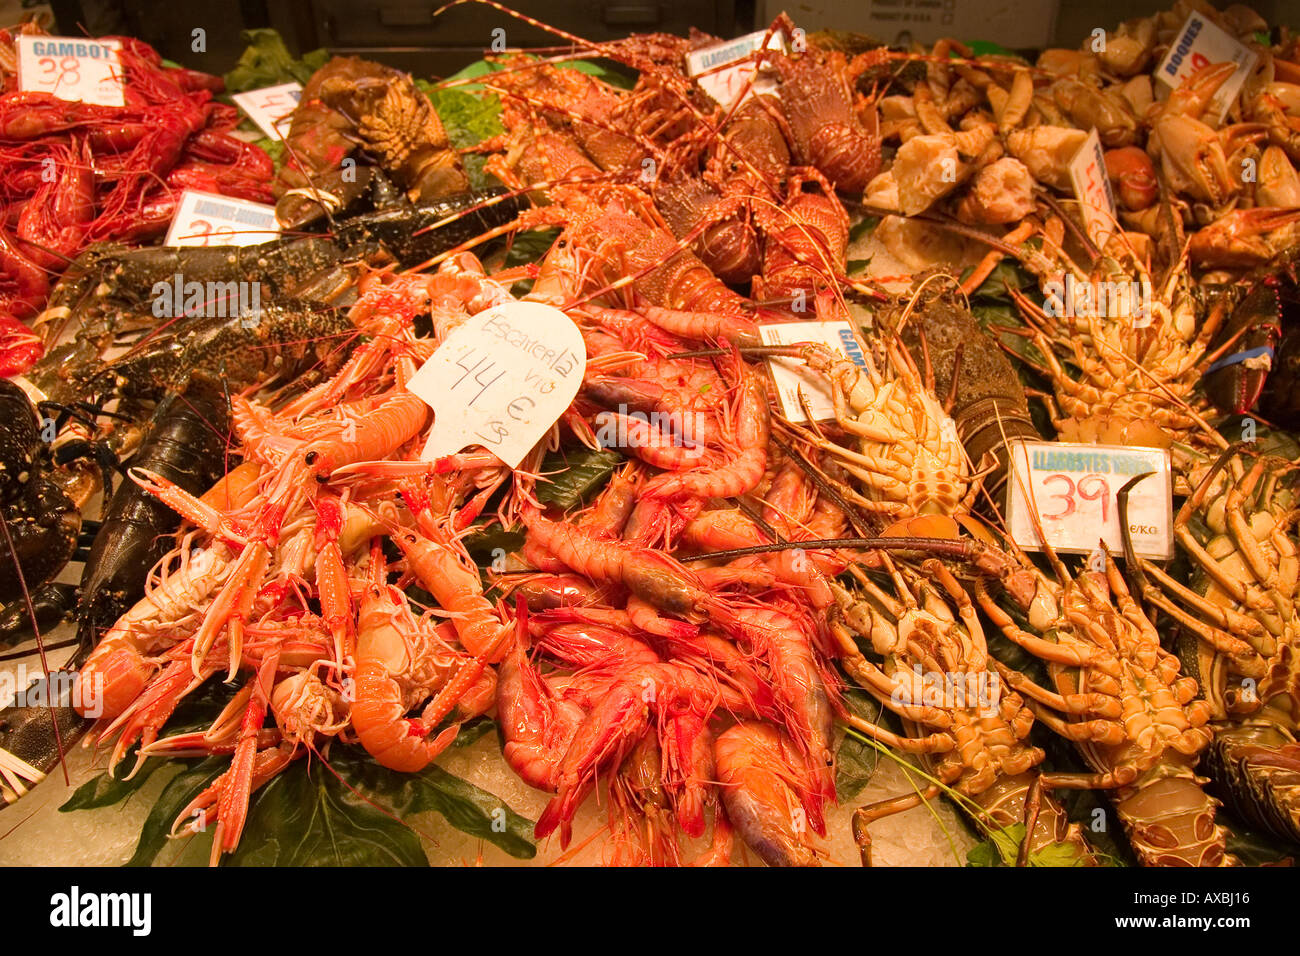 Spain Barcelona Market hall Mercat de la Boqueria fresh fish seefood prawns - Stock Image